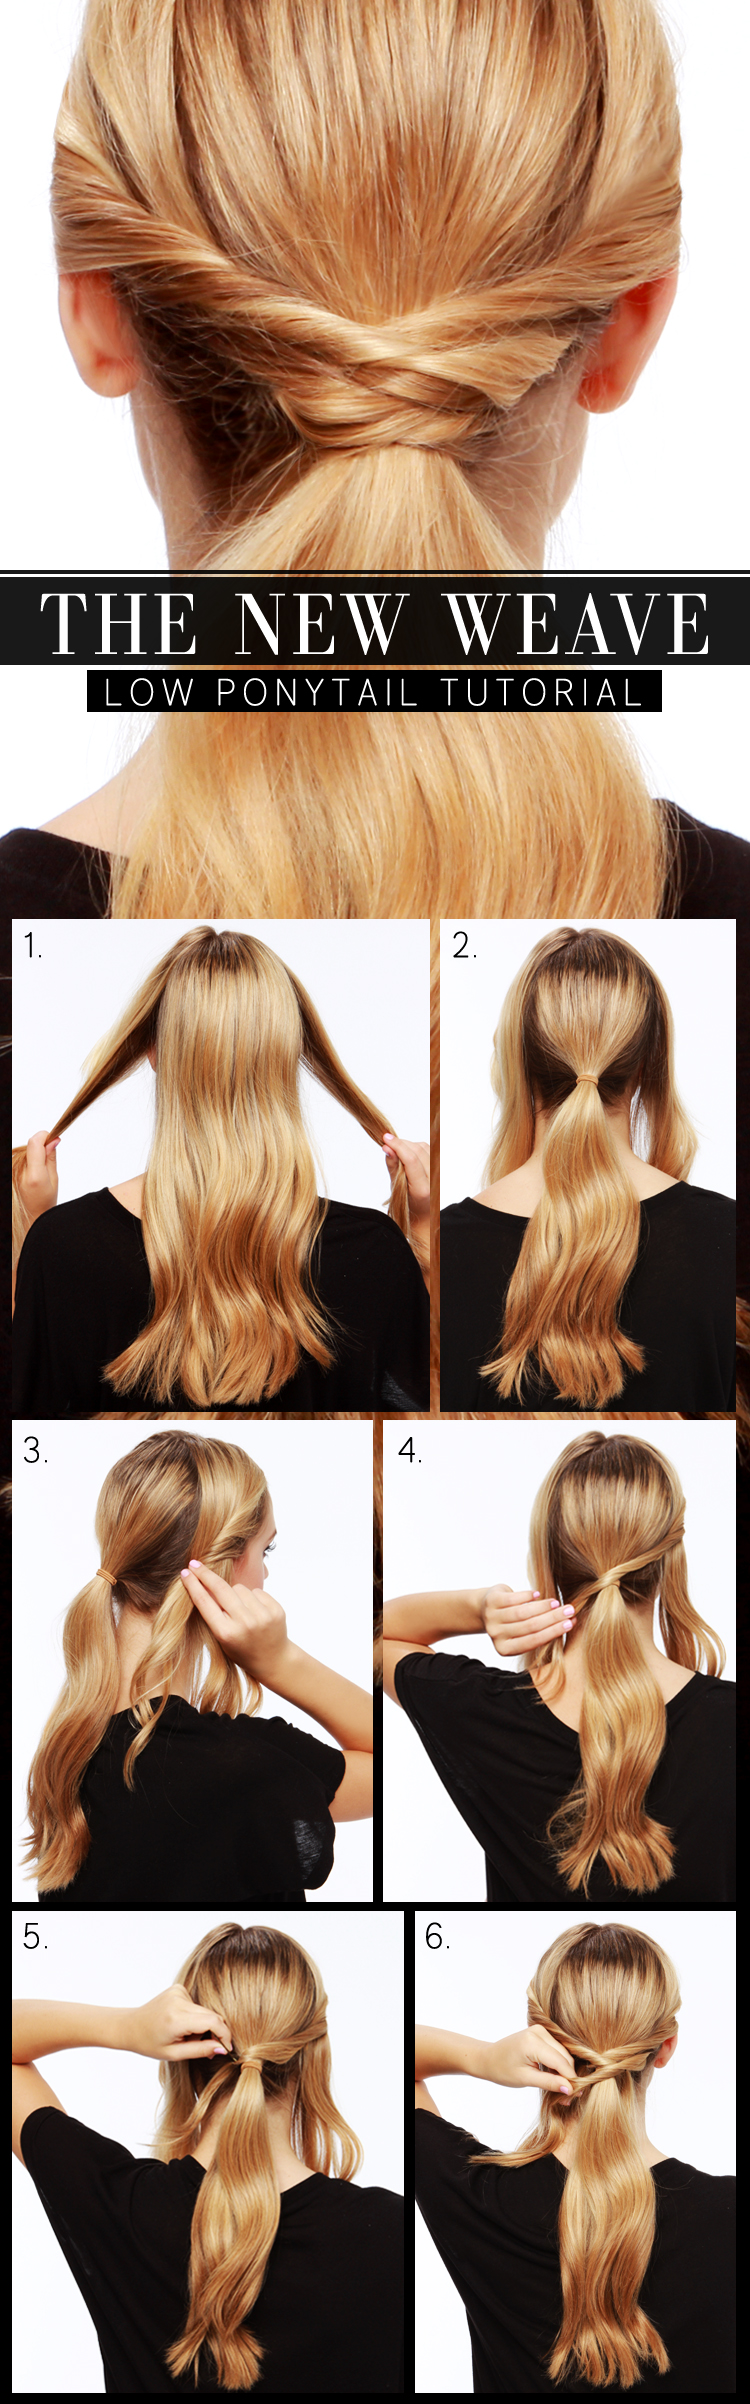 Low Woven Ponytail Tutorial